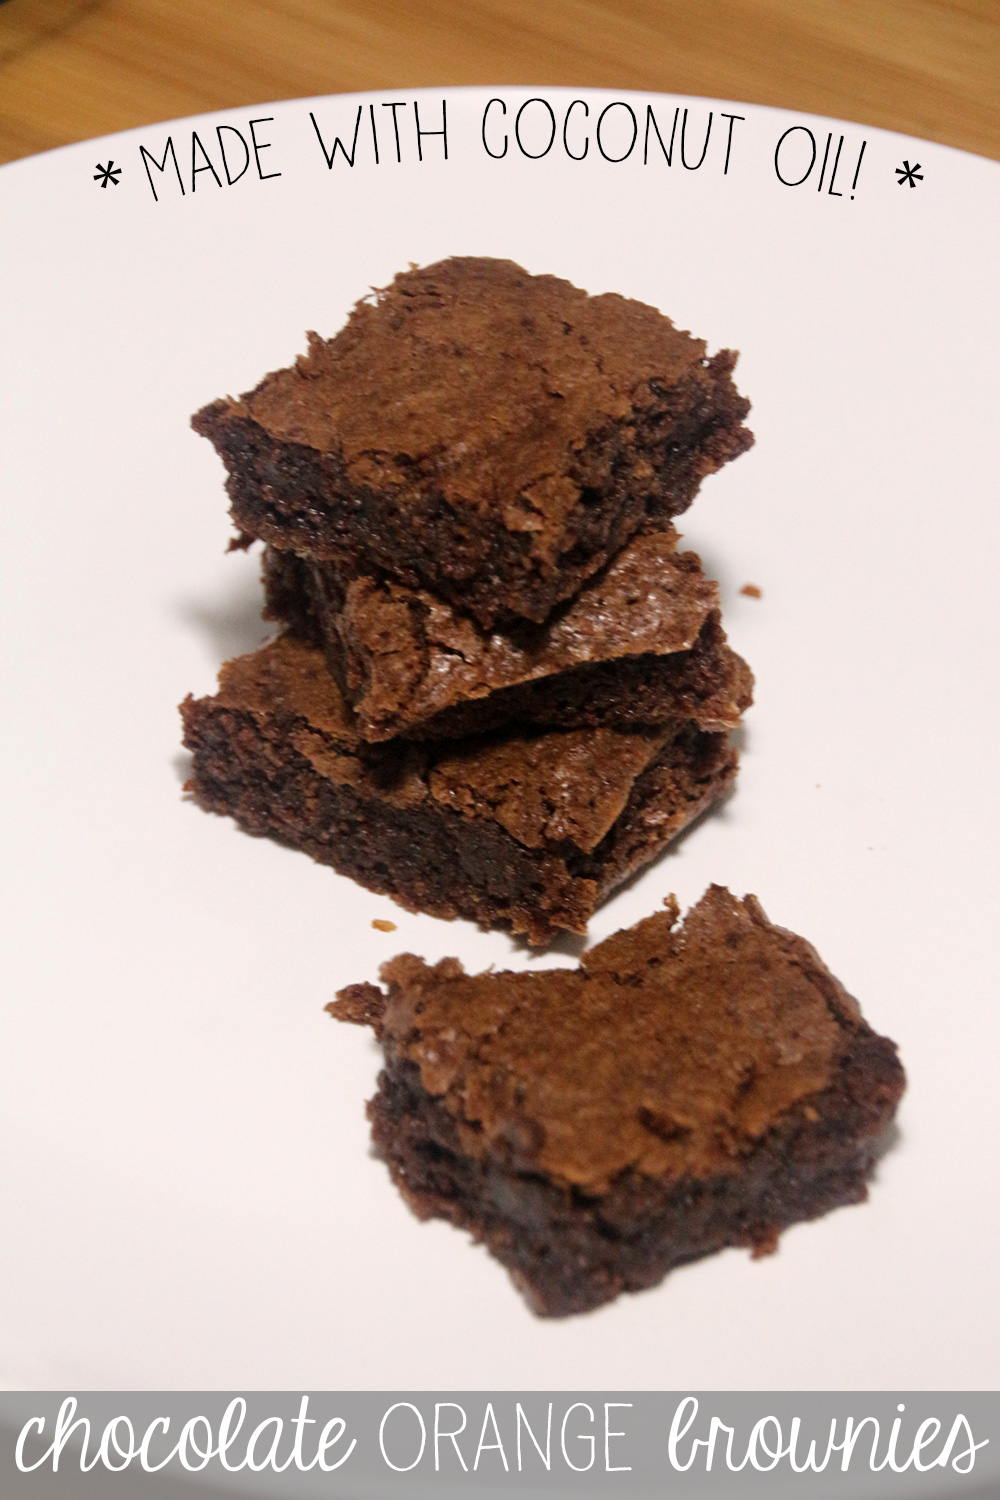 Chocolate-Orange-Brownies-010-text